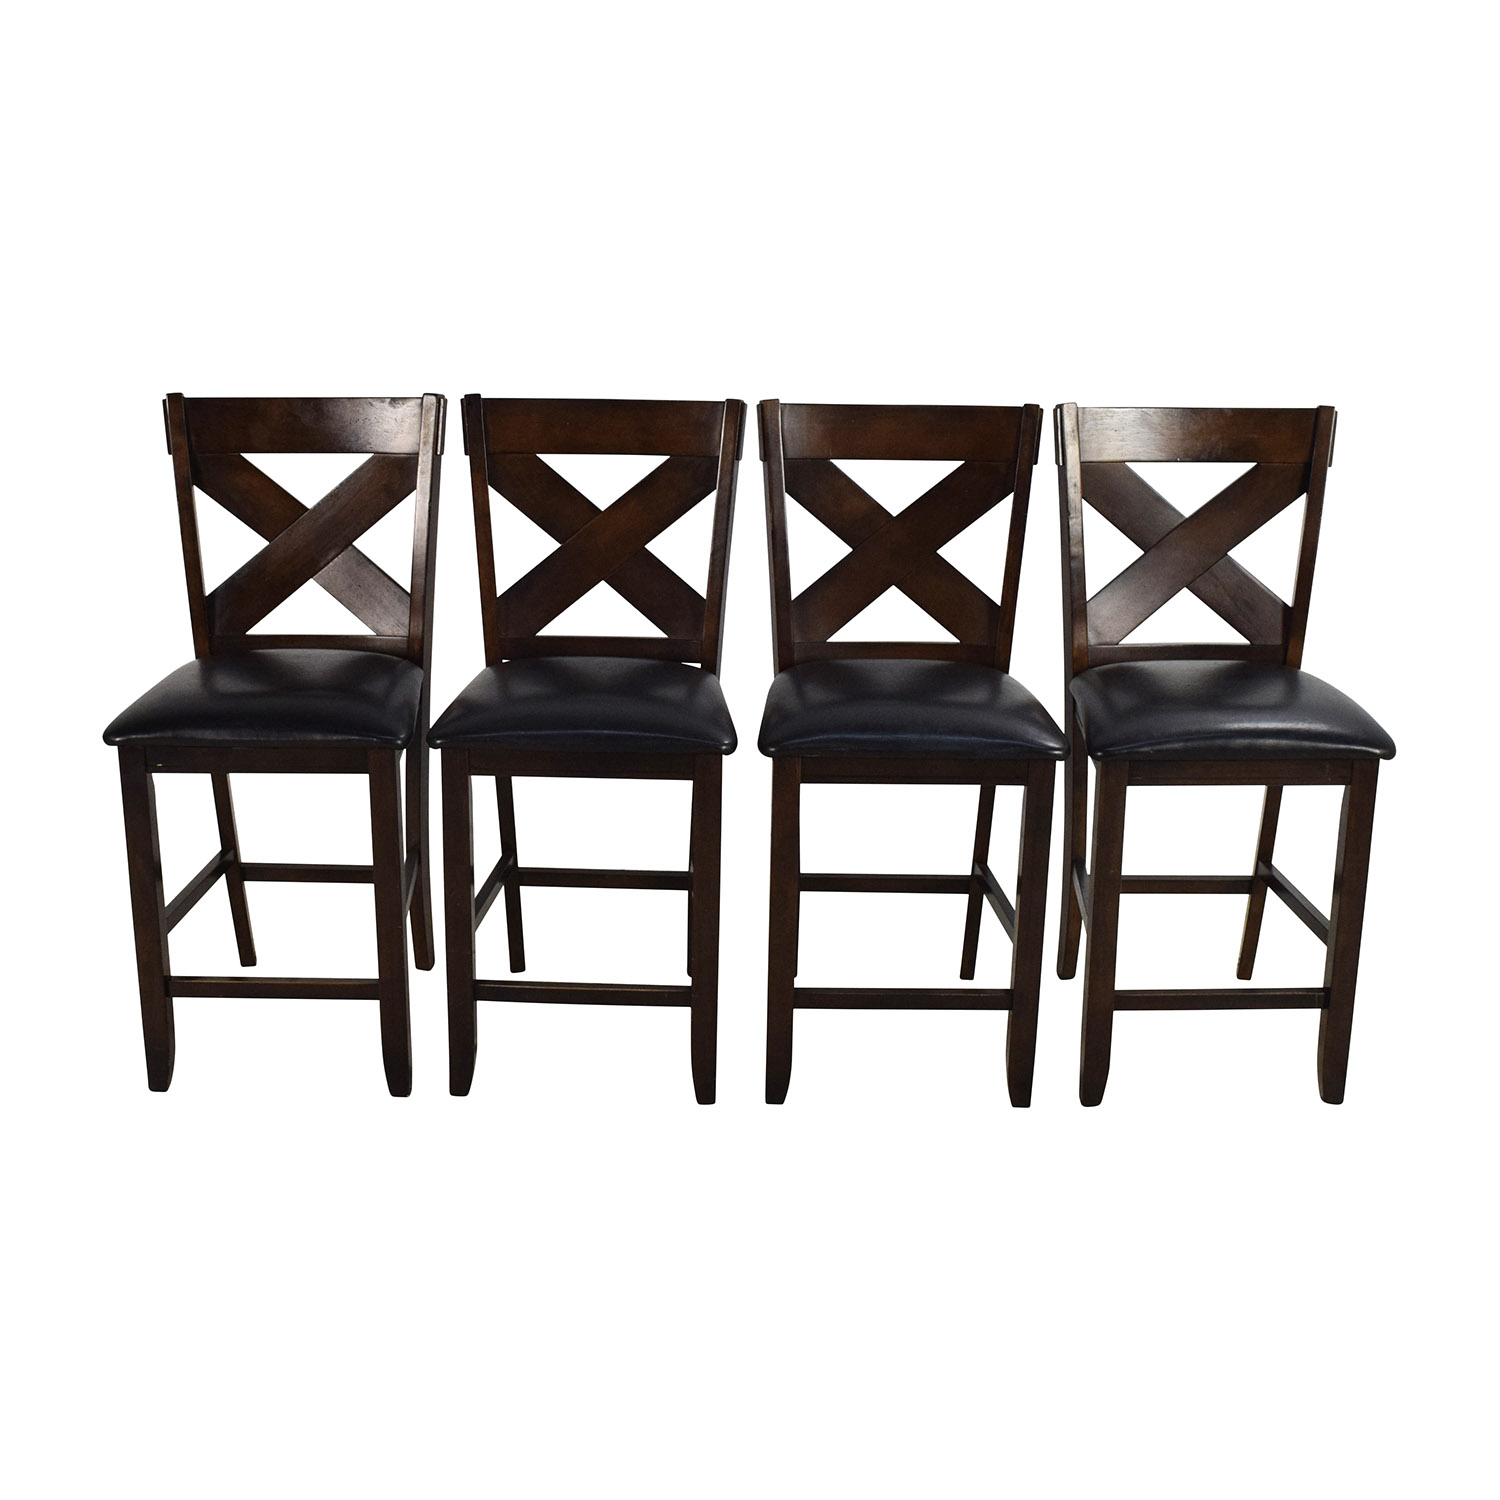 Bobs X Factor Dining Set : mpfmpf.com Almirah, Beds ...